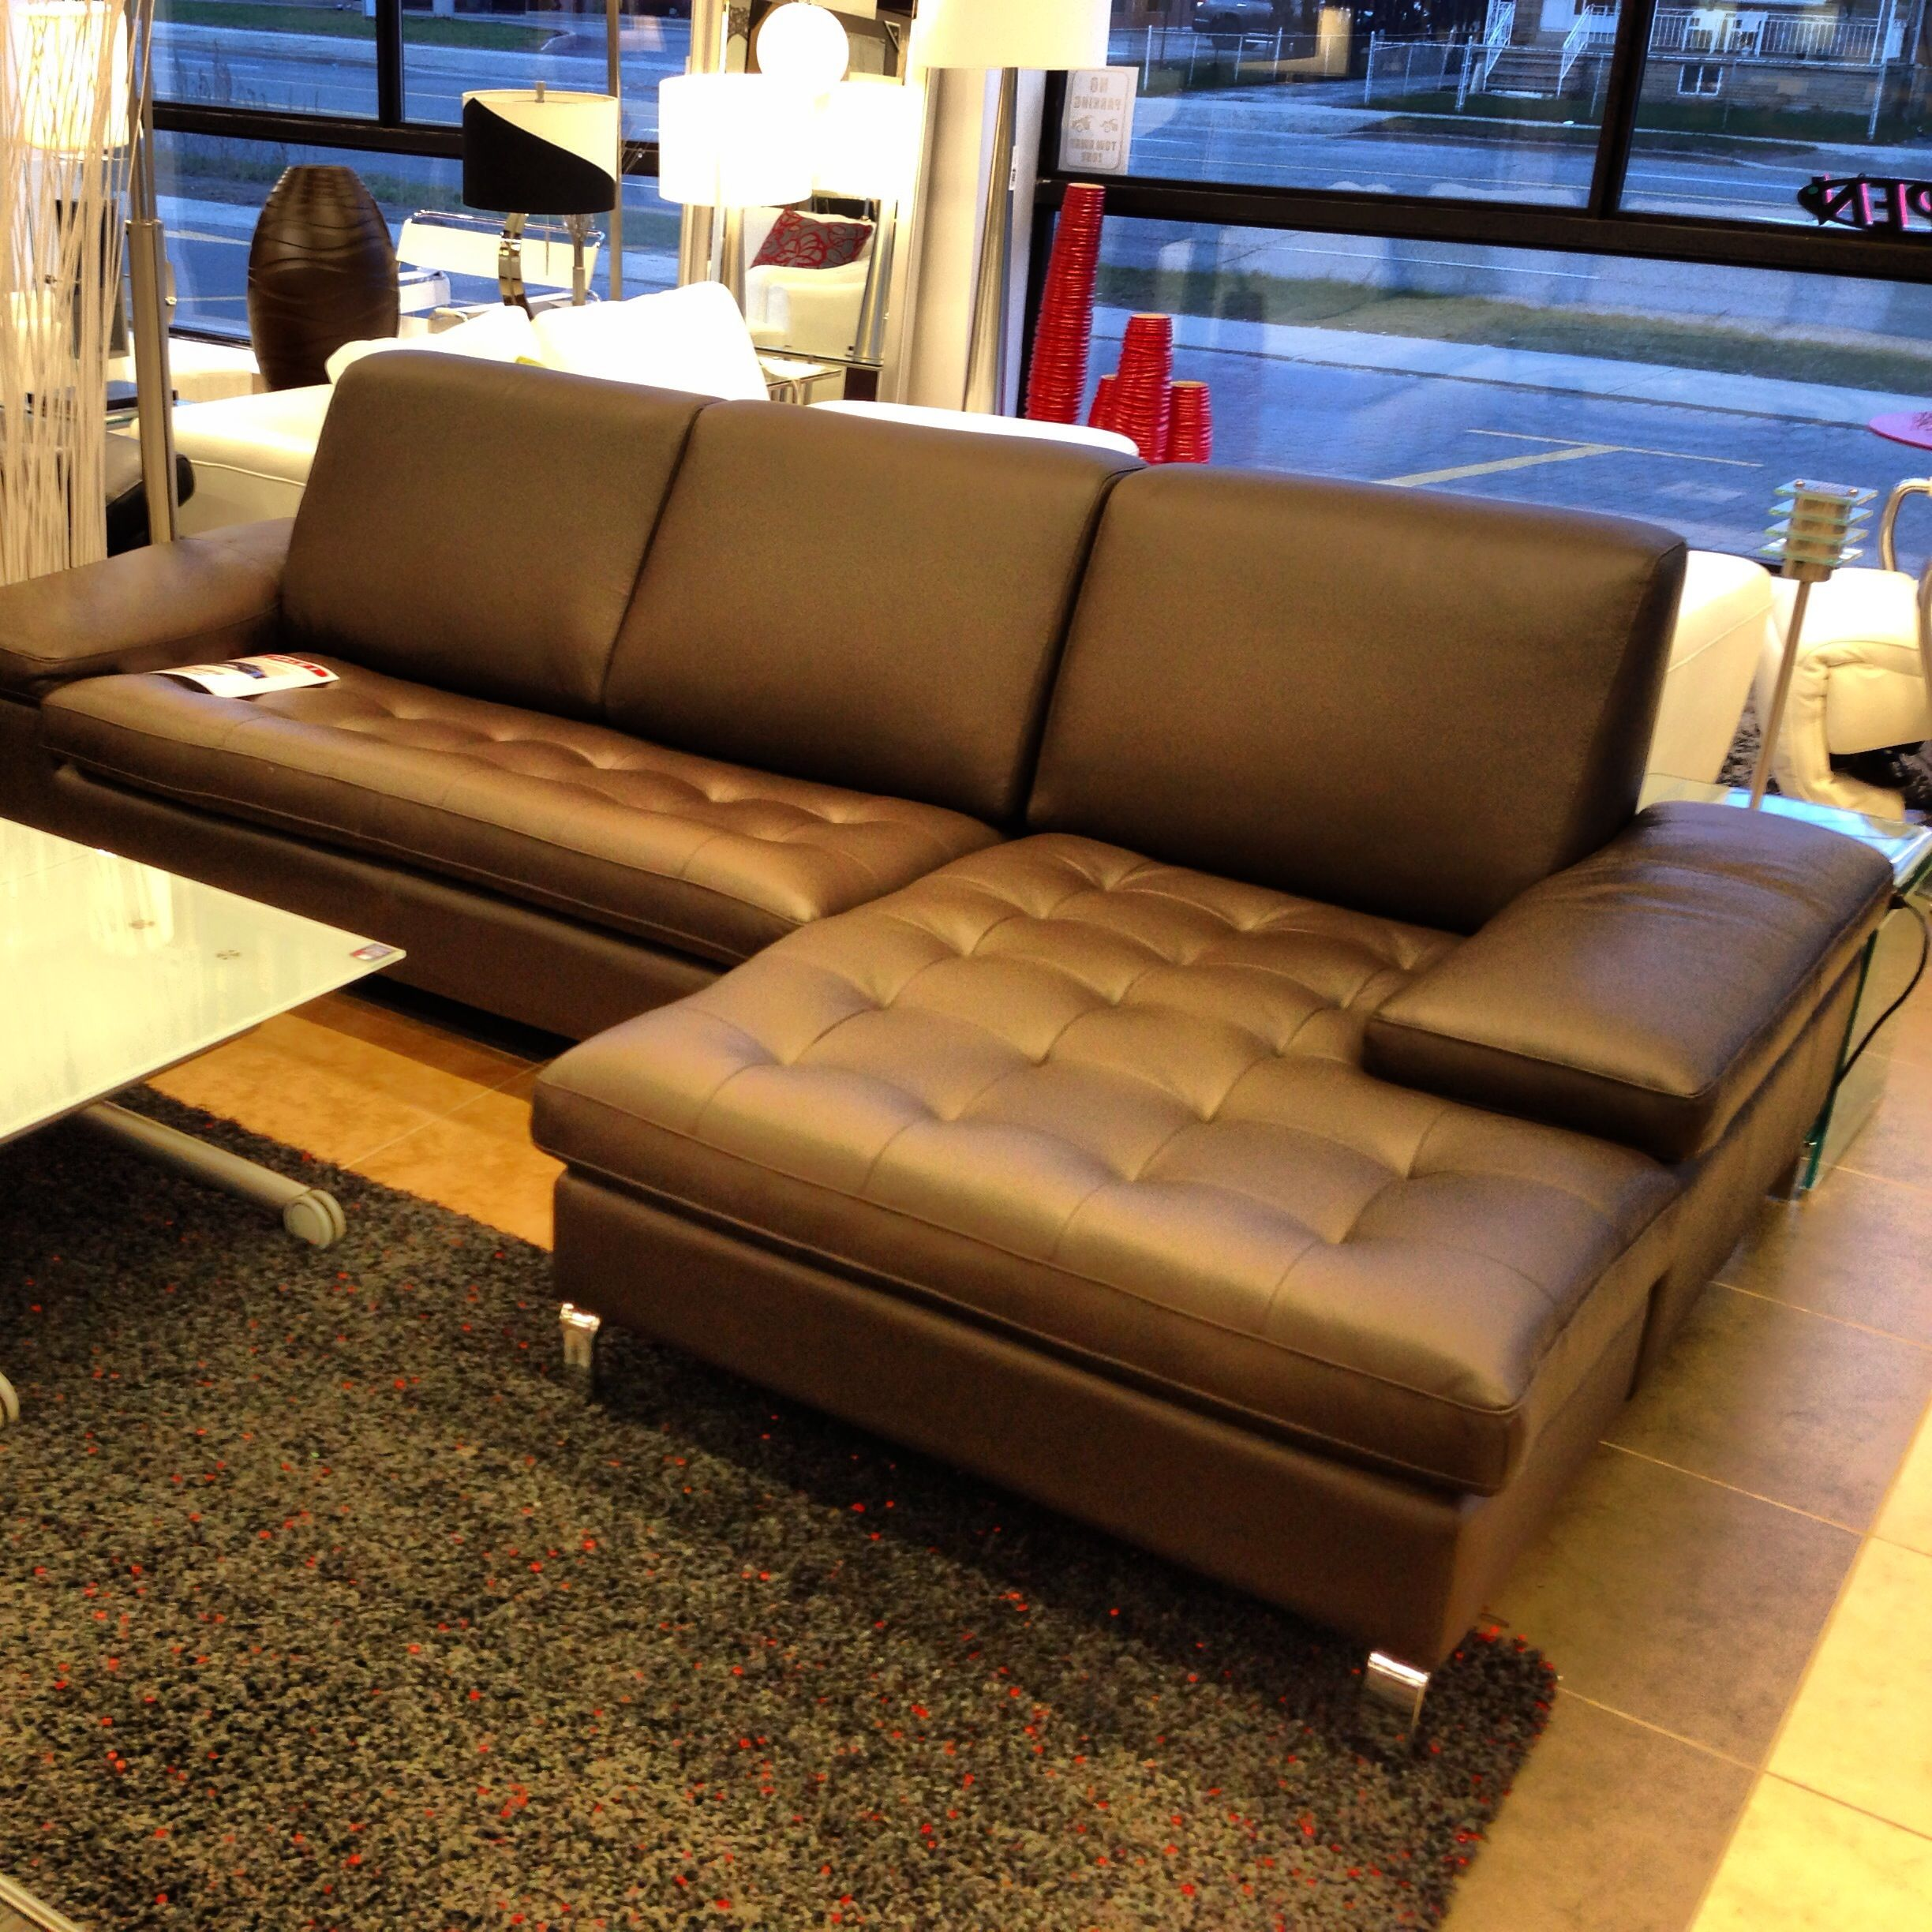 Brown leather sectional sofa from furniture Toronto $2699